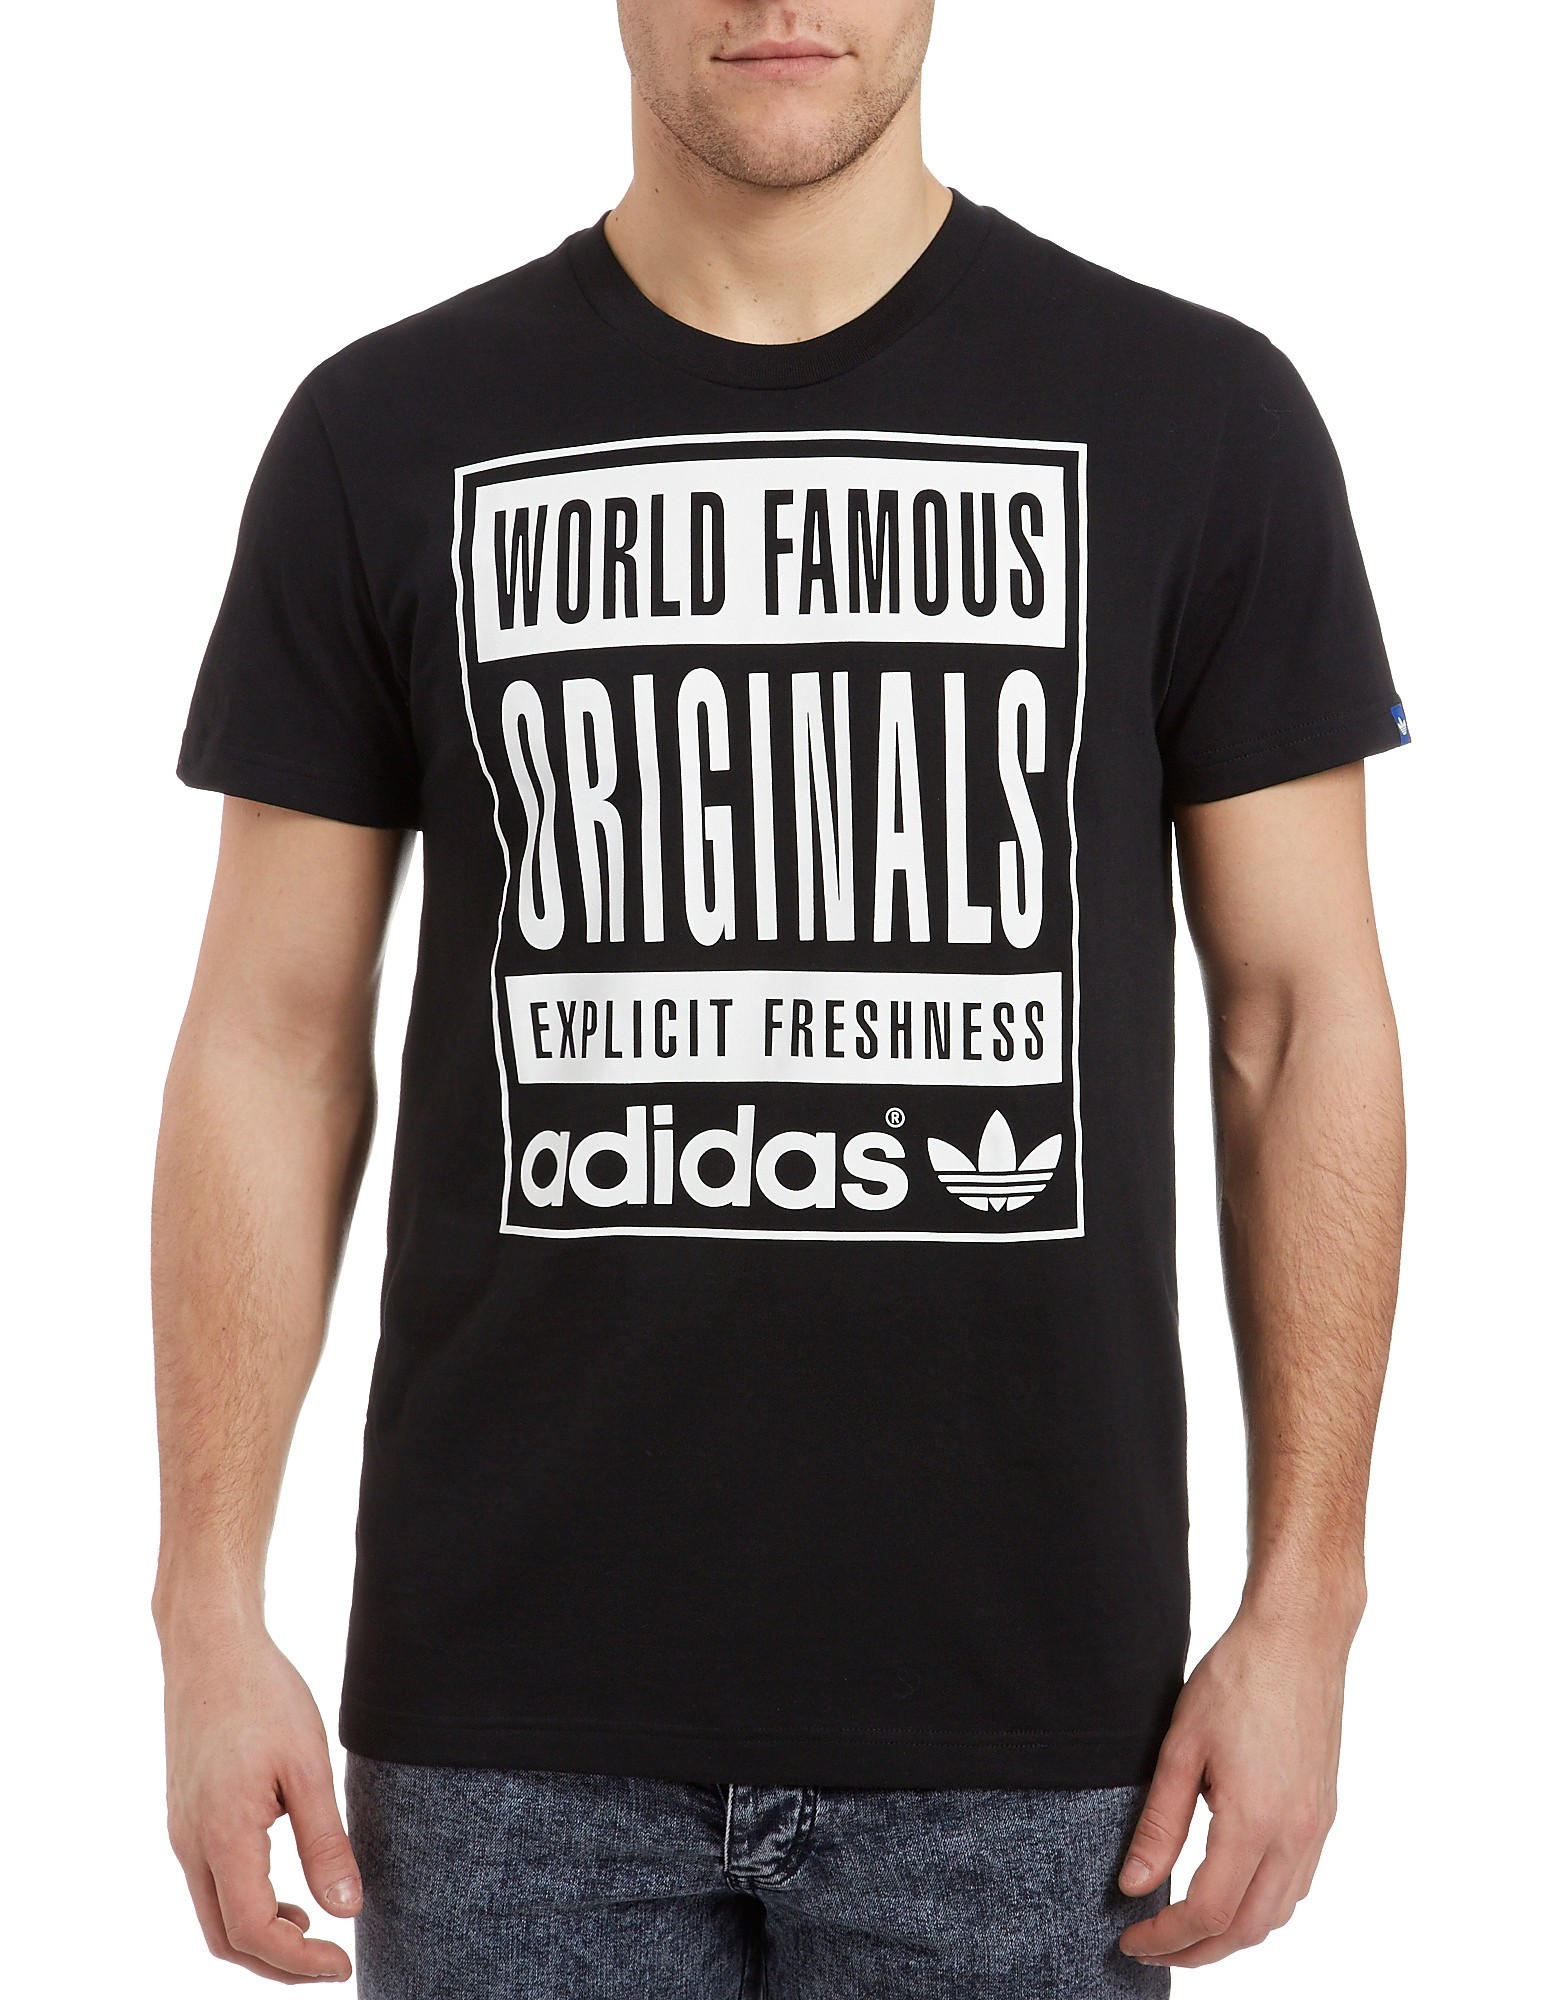 adidas Originals World Famous T-Shirt product image